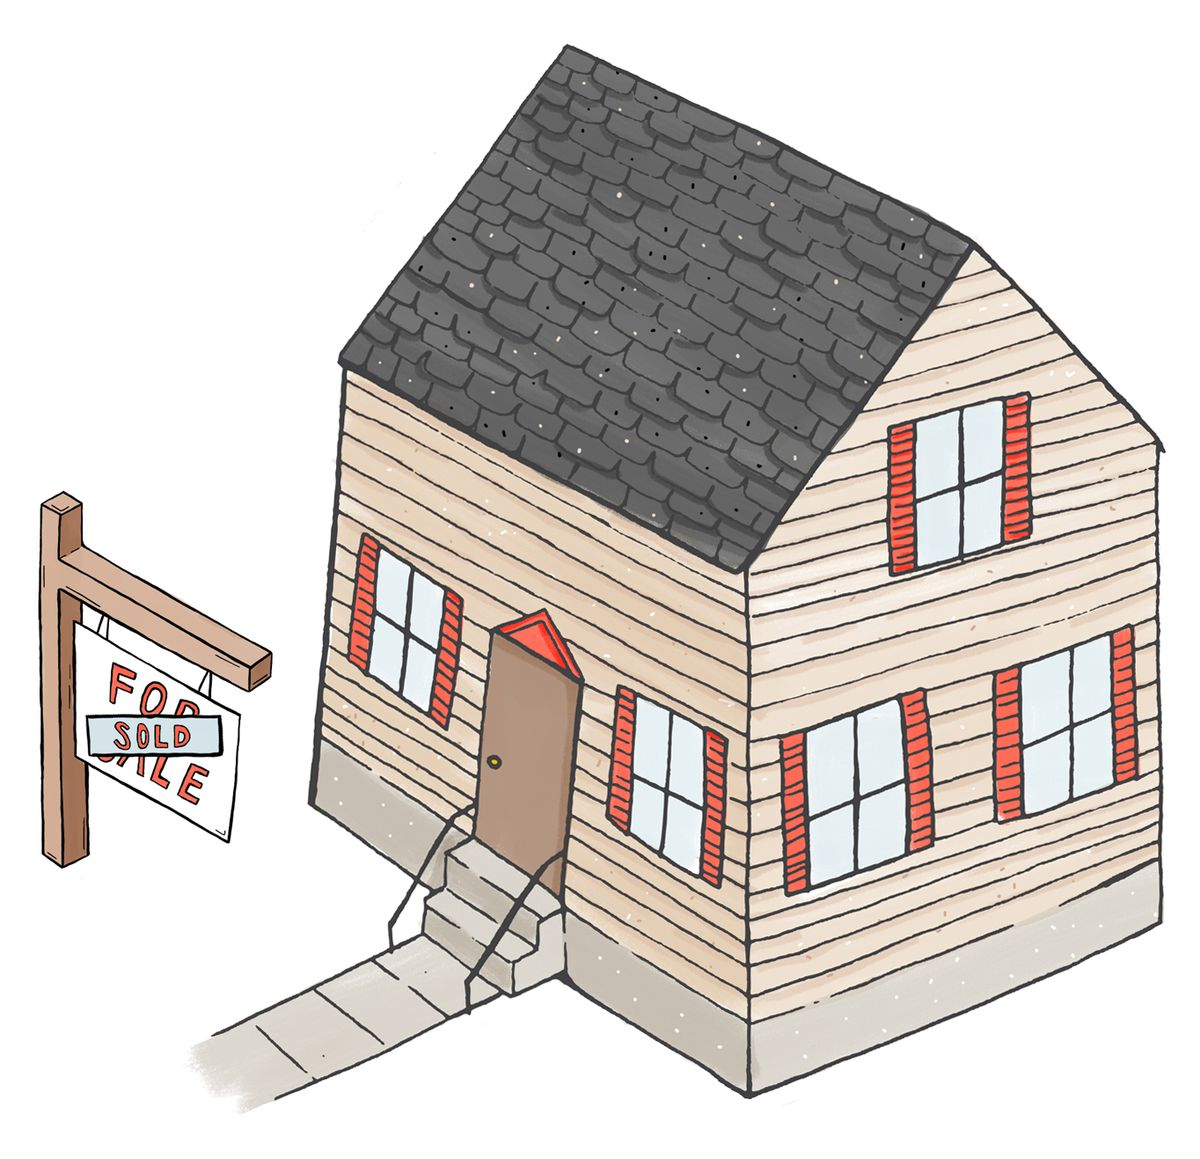 Home Inspections 101 What To Look Out For Curbed Circuit Breaker House The First 8 Things You Should Do After Buying A Sunny Eckerle